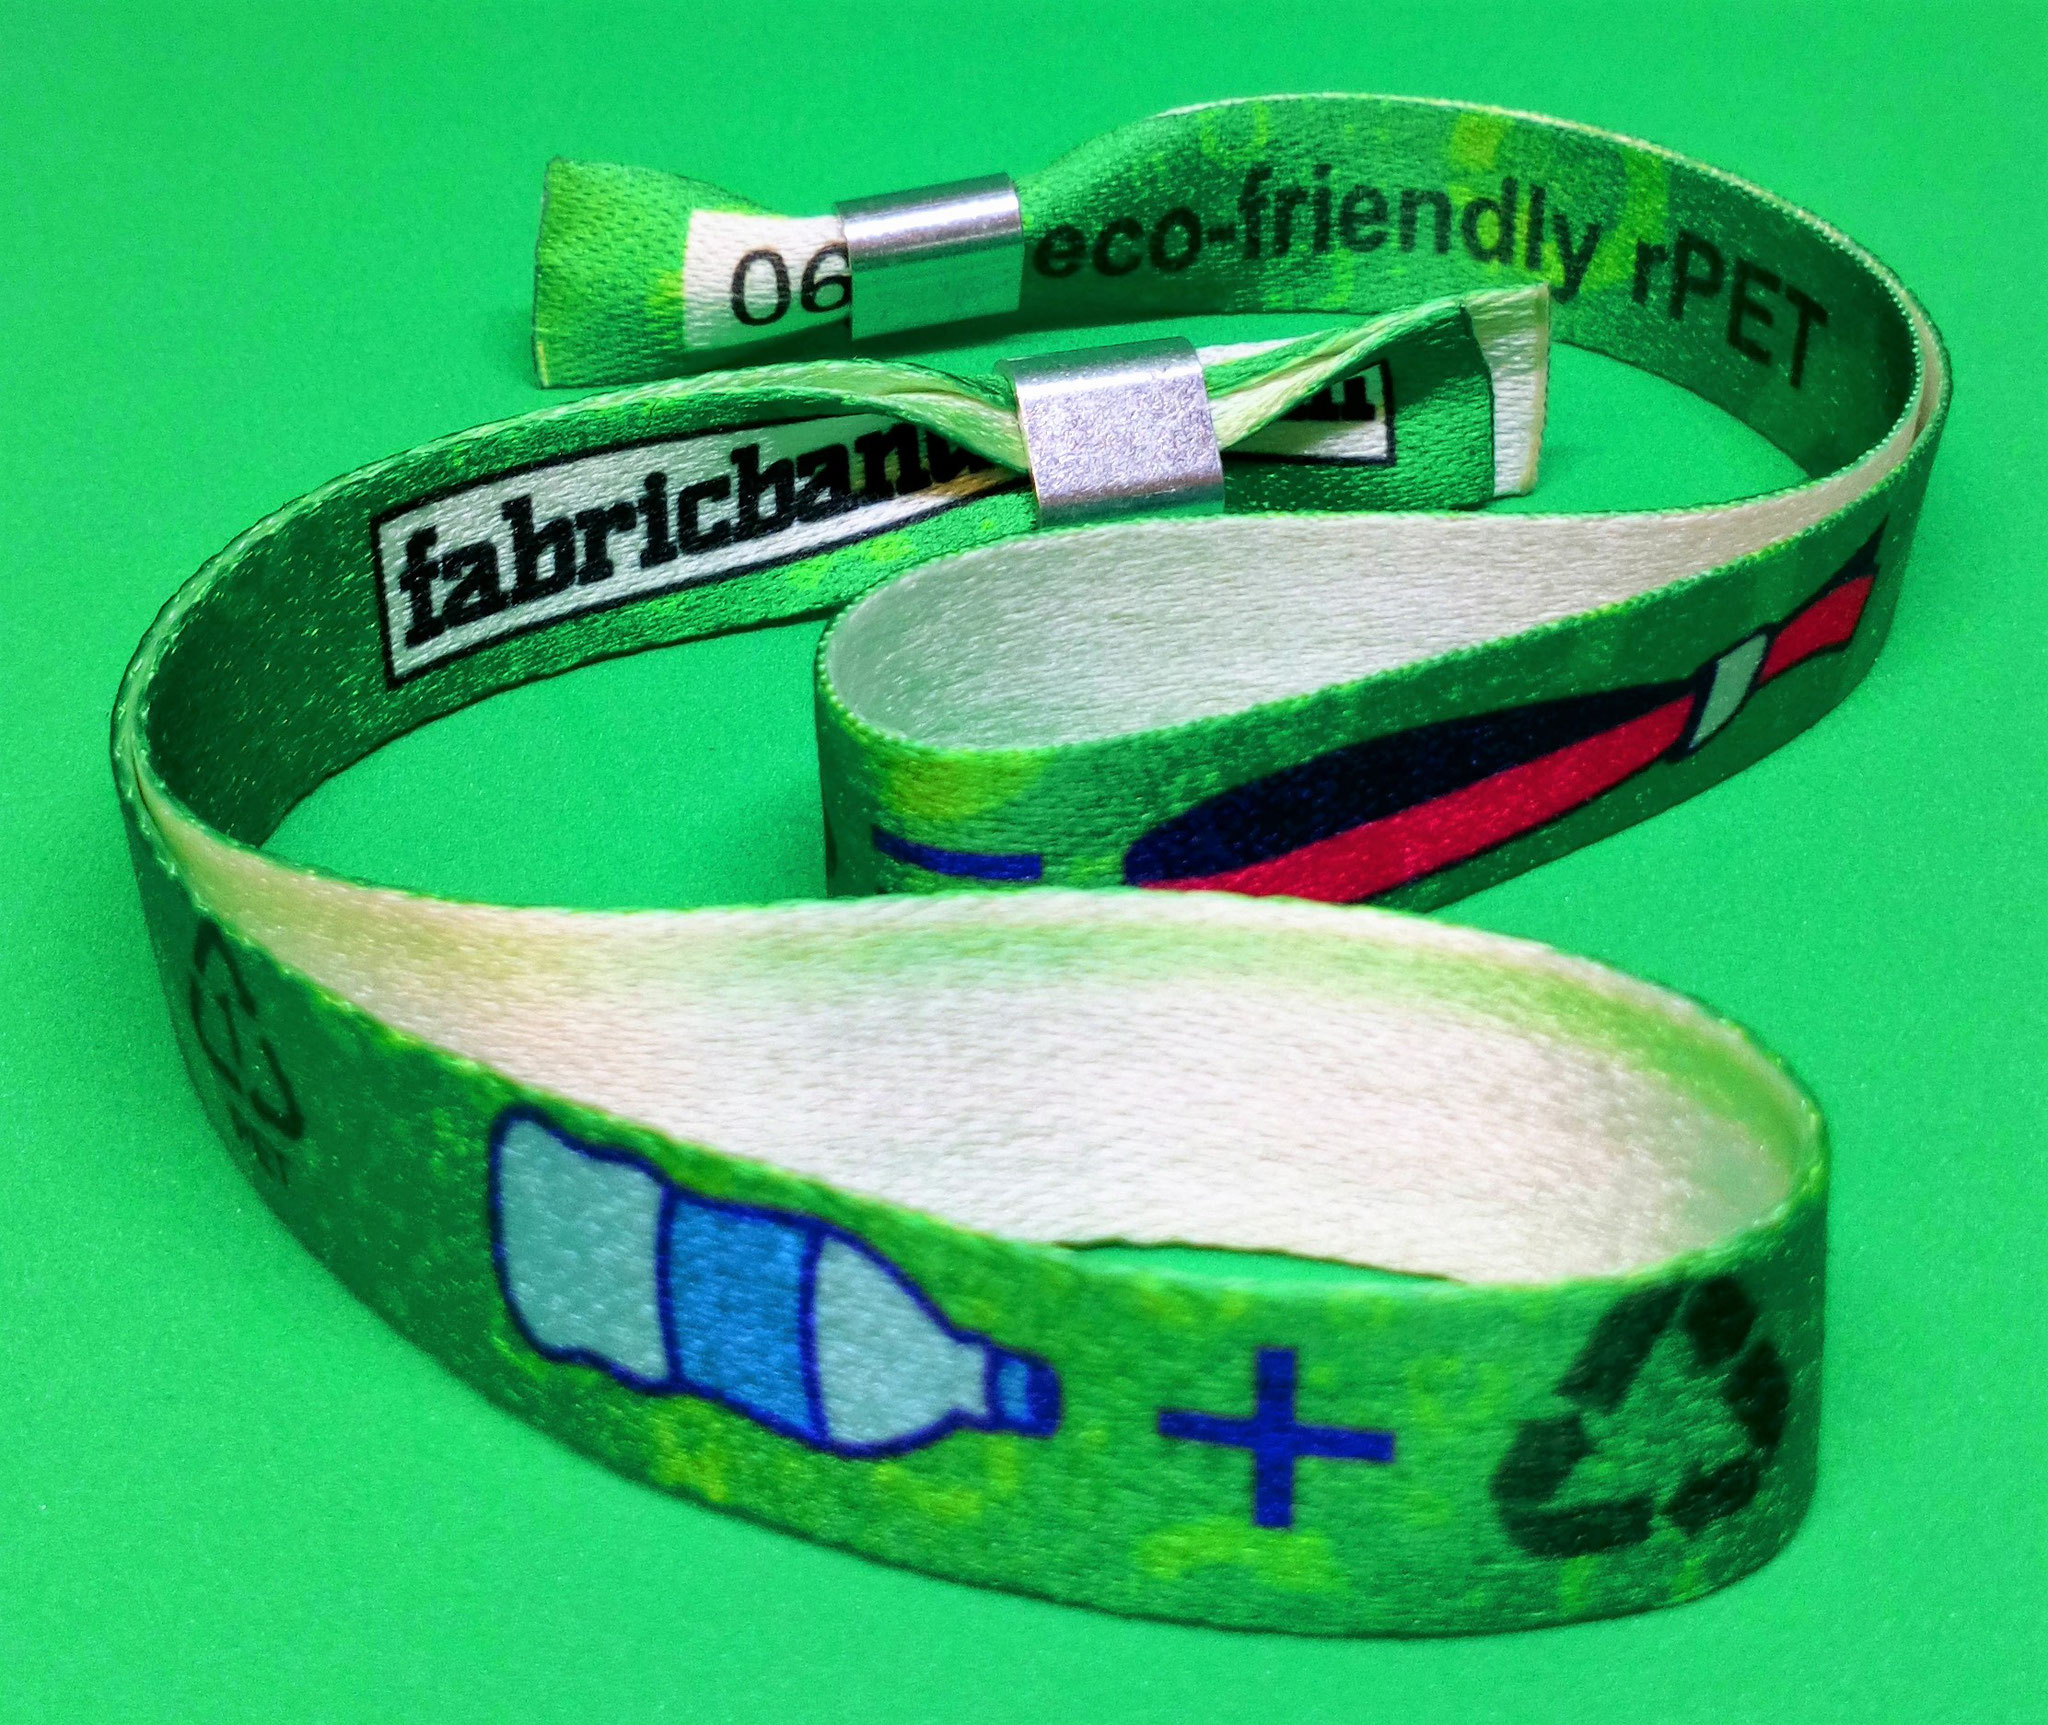 Ask about our eco-friendly wristbands!